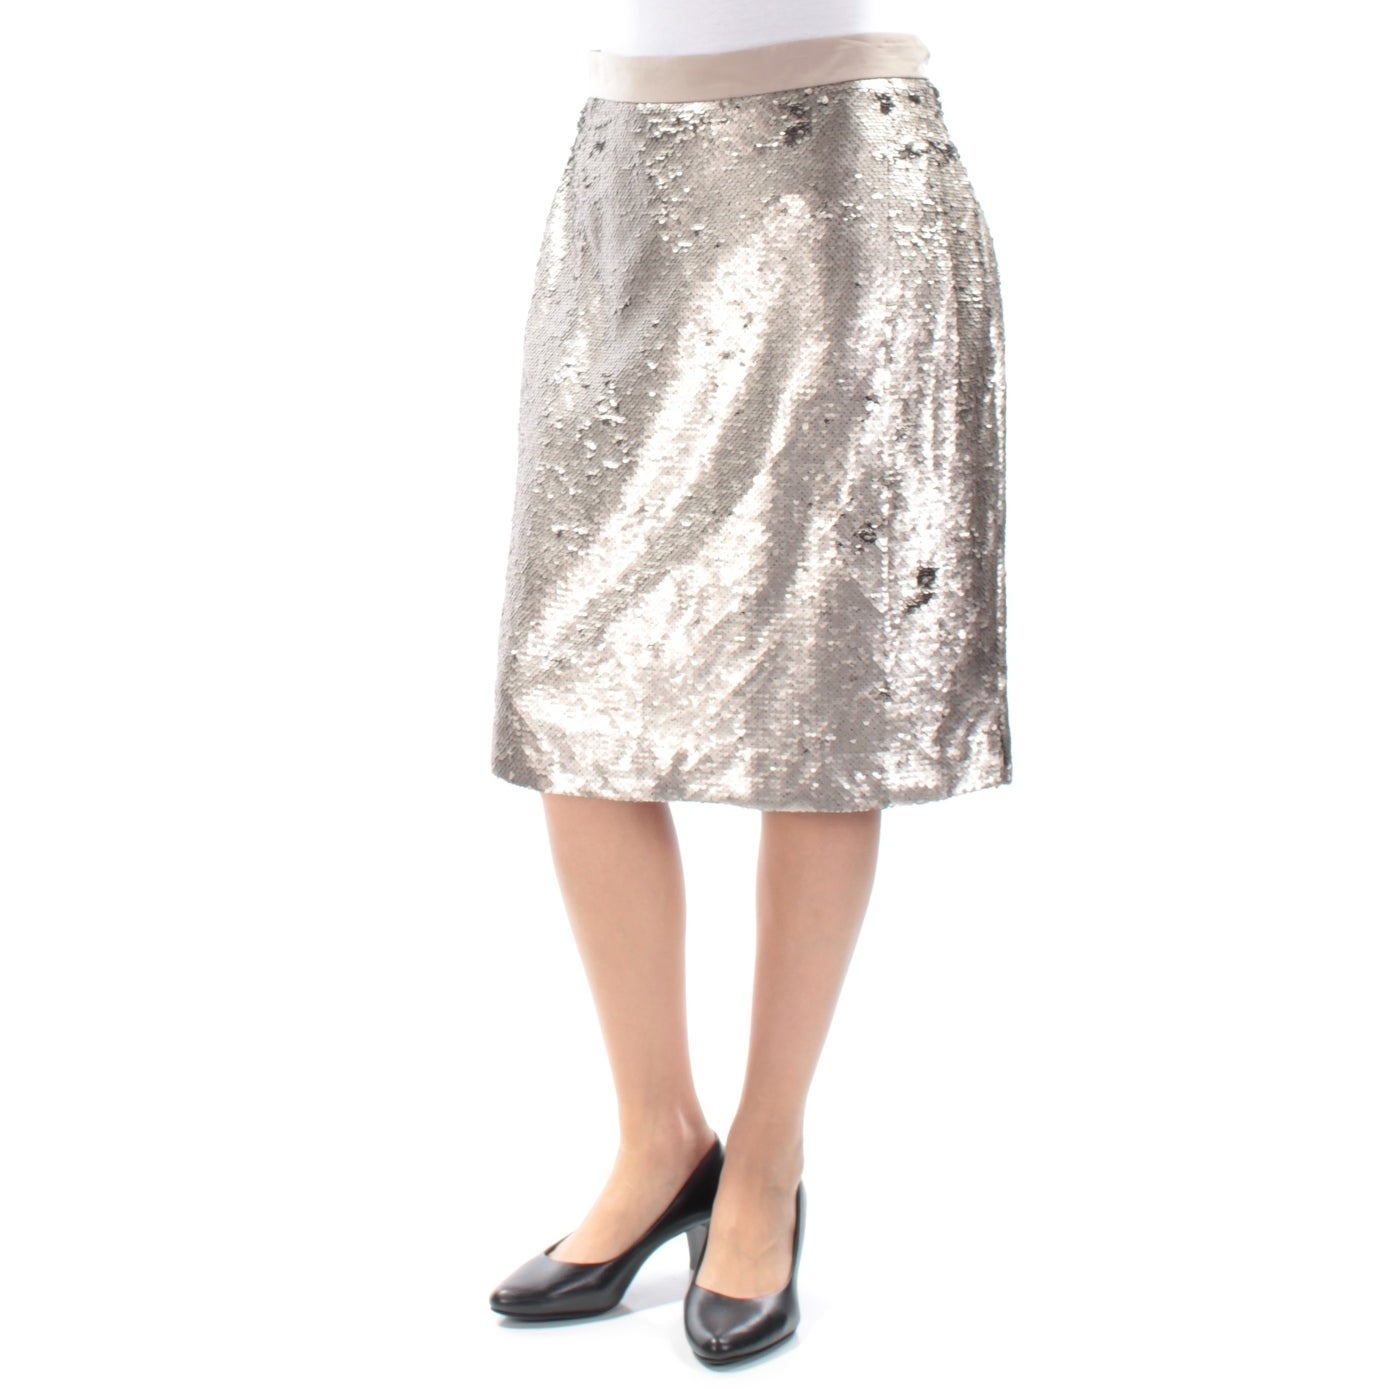 e72a7d206 Shop MAISON JULES Womens Gold Sequined Slitted Below The Knee Pencil Skirt  Size: 6 - Free Shipping On Orders Over $45 - Overstock - 25625356